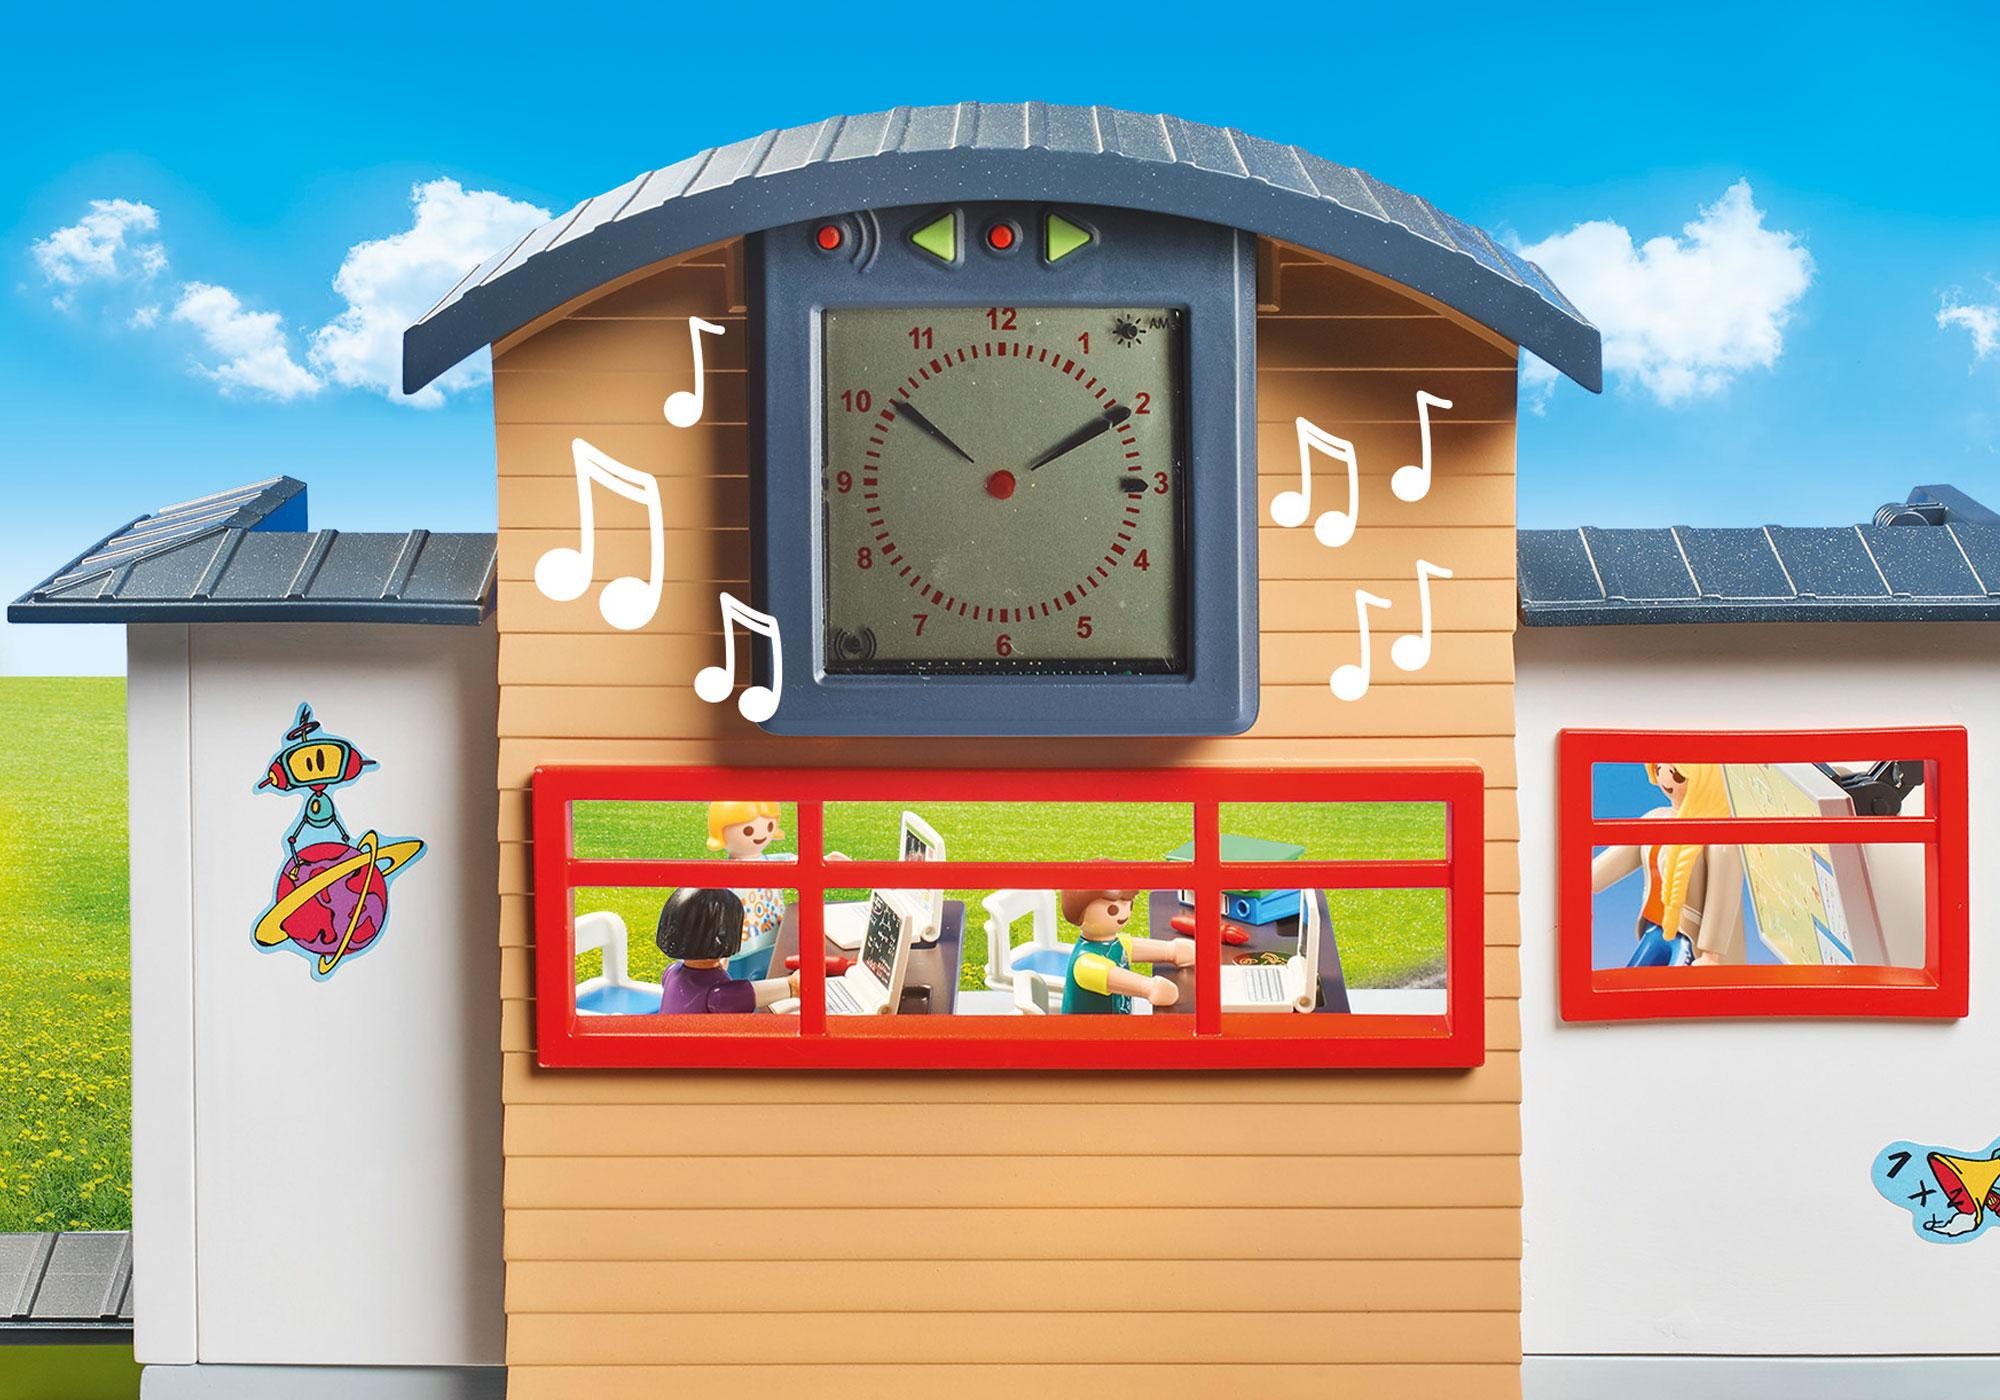 http://media.playmobil.com/i/playmobil/9453_product_extra2/Große Schule mit Einrichtung